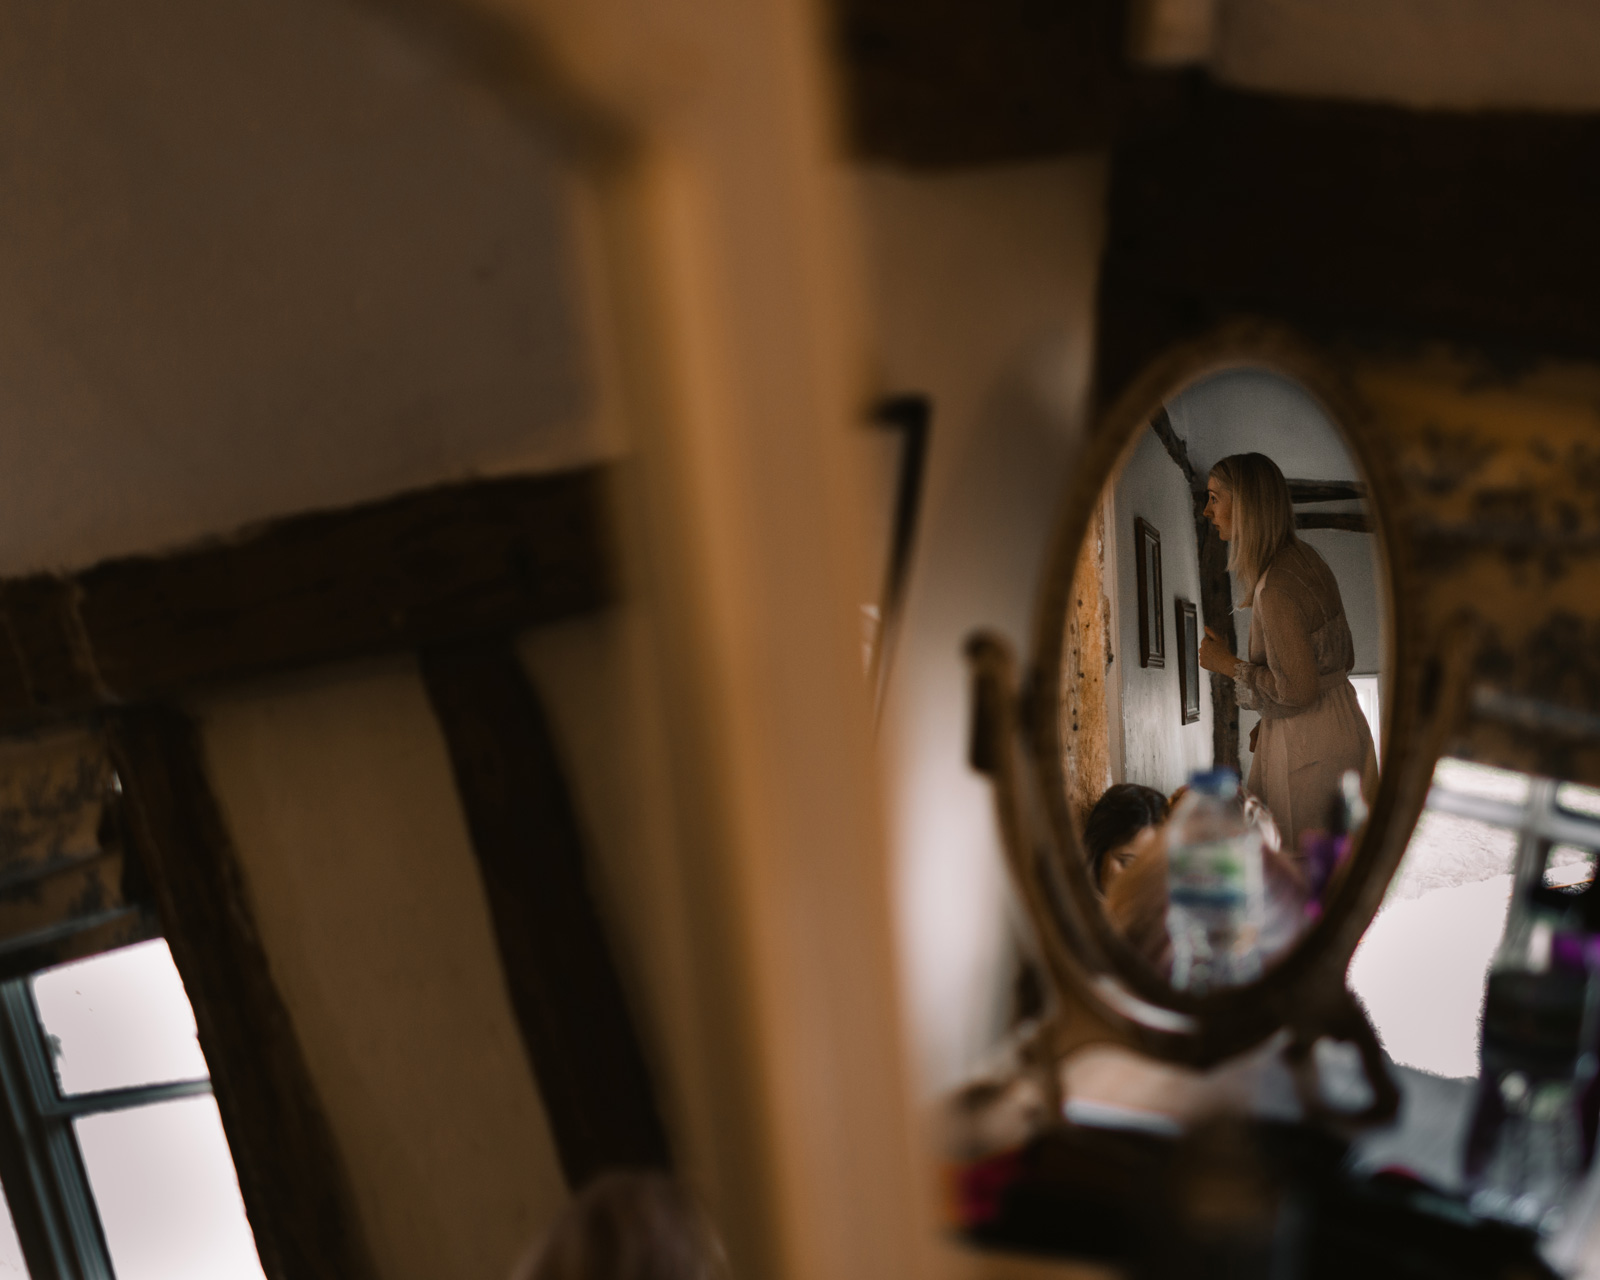 Reflection of bride in oval mirror